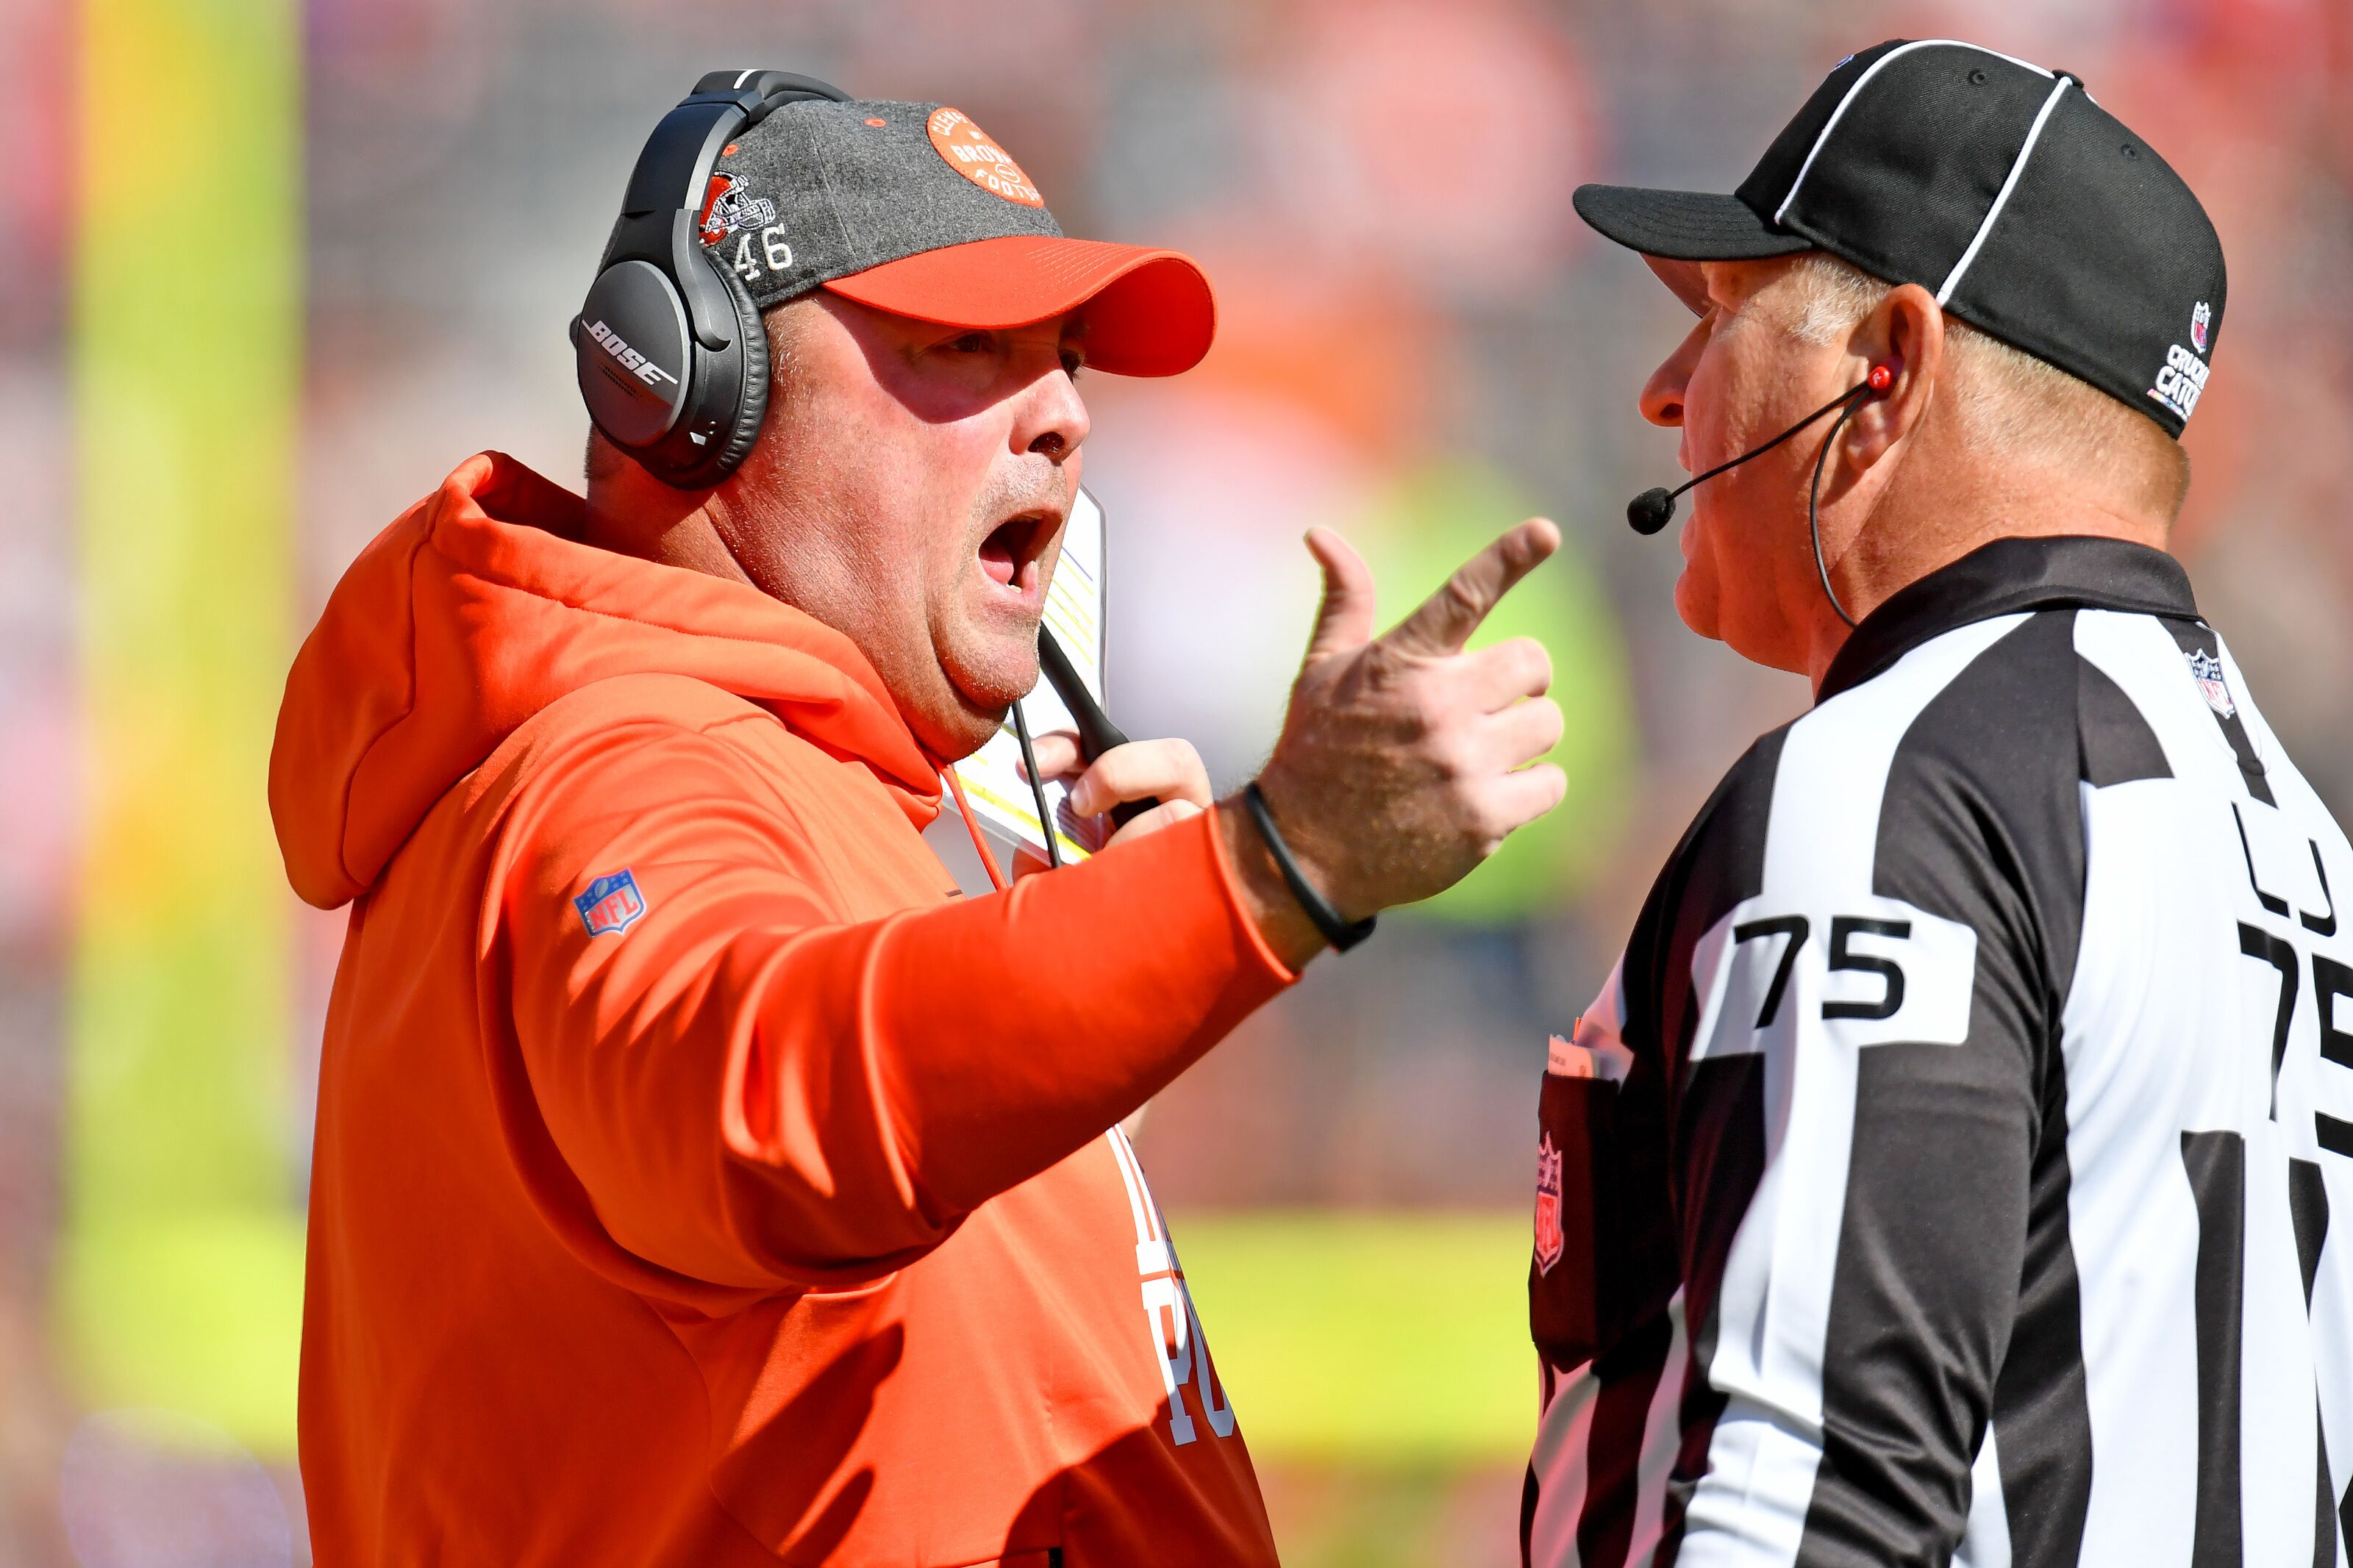 Cleveland Browns: Fire up the hot seat, there's room for Browns' coaches